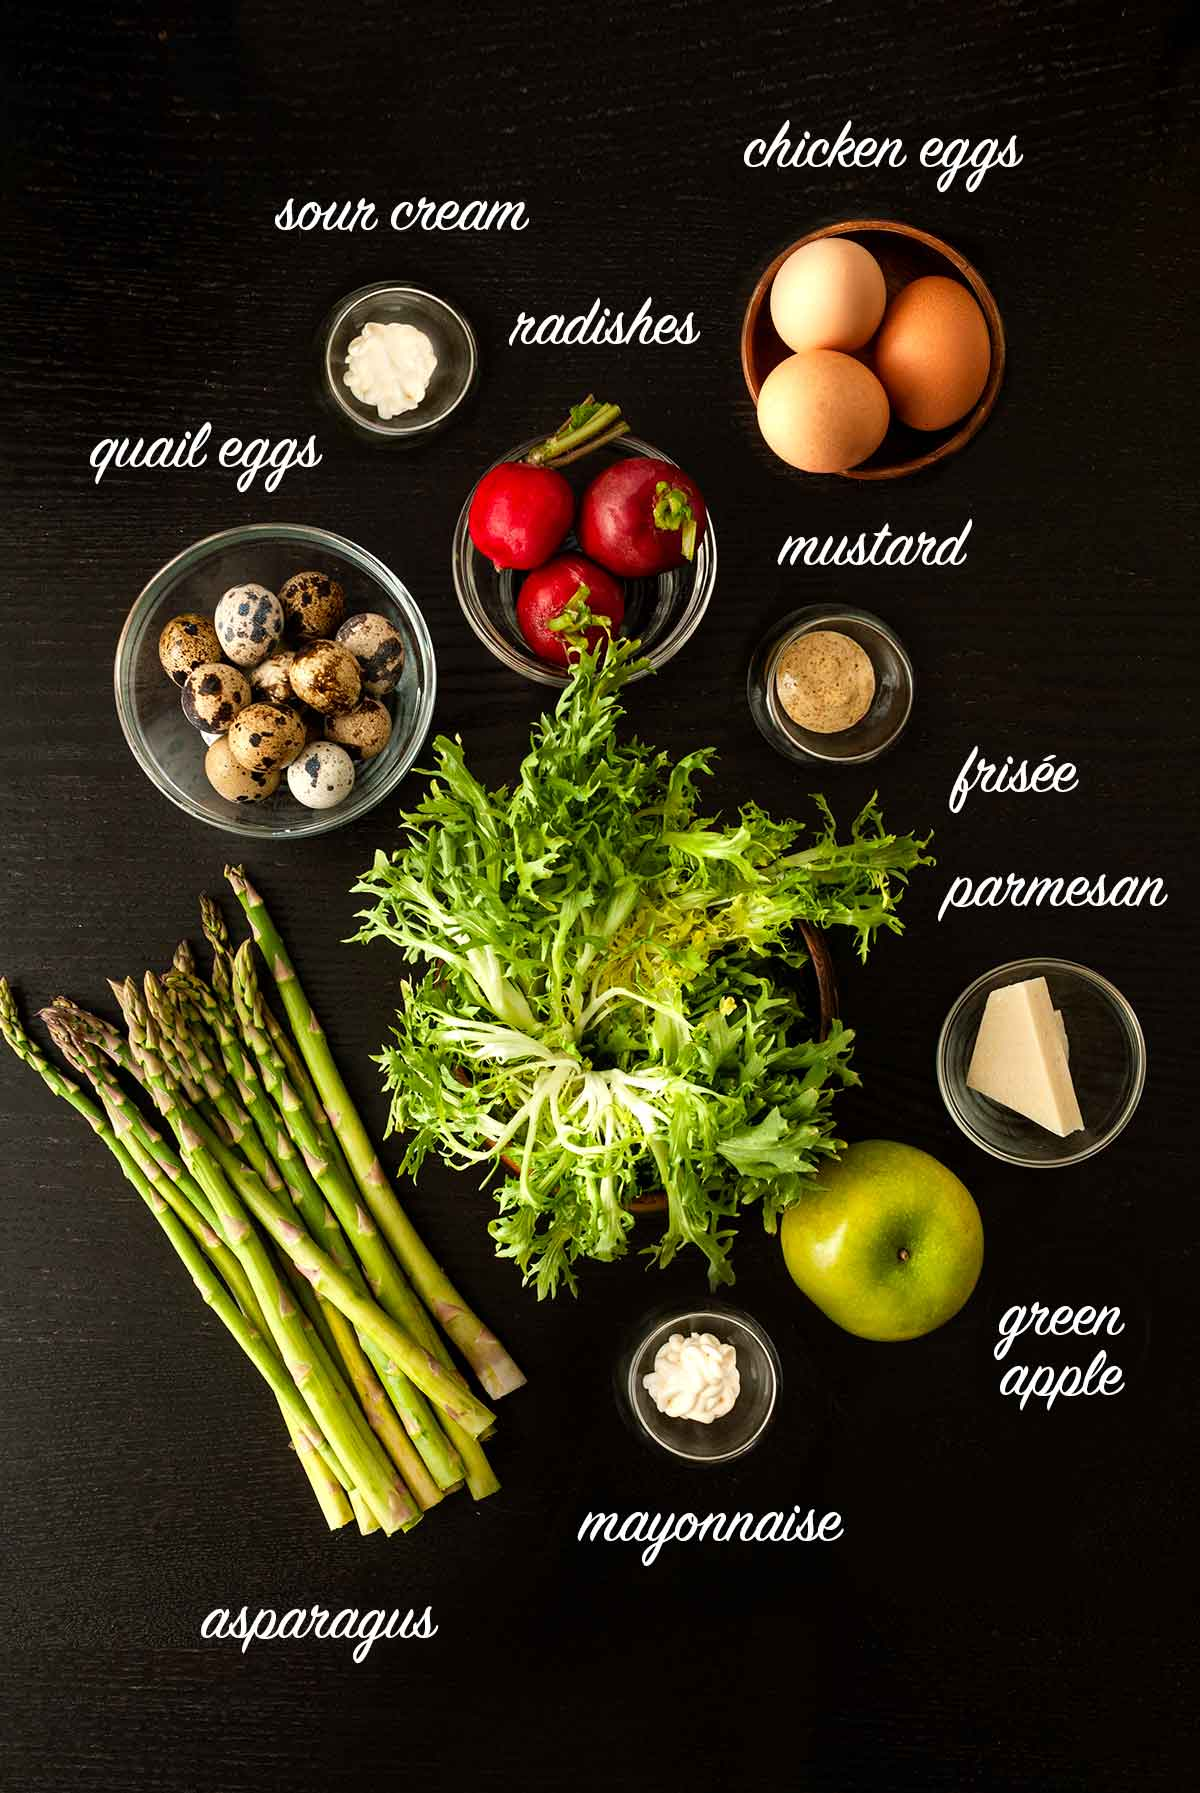 Ingredients for a salad on a table with text labels of what they are.